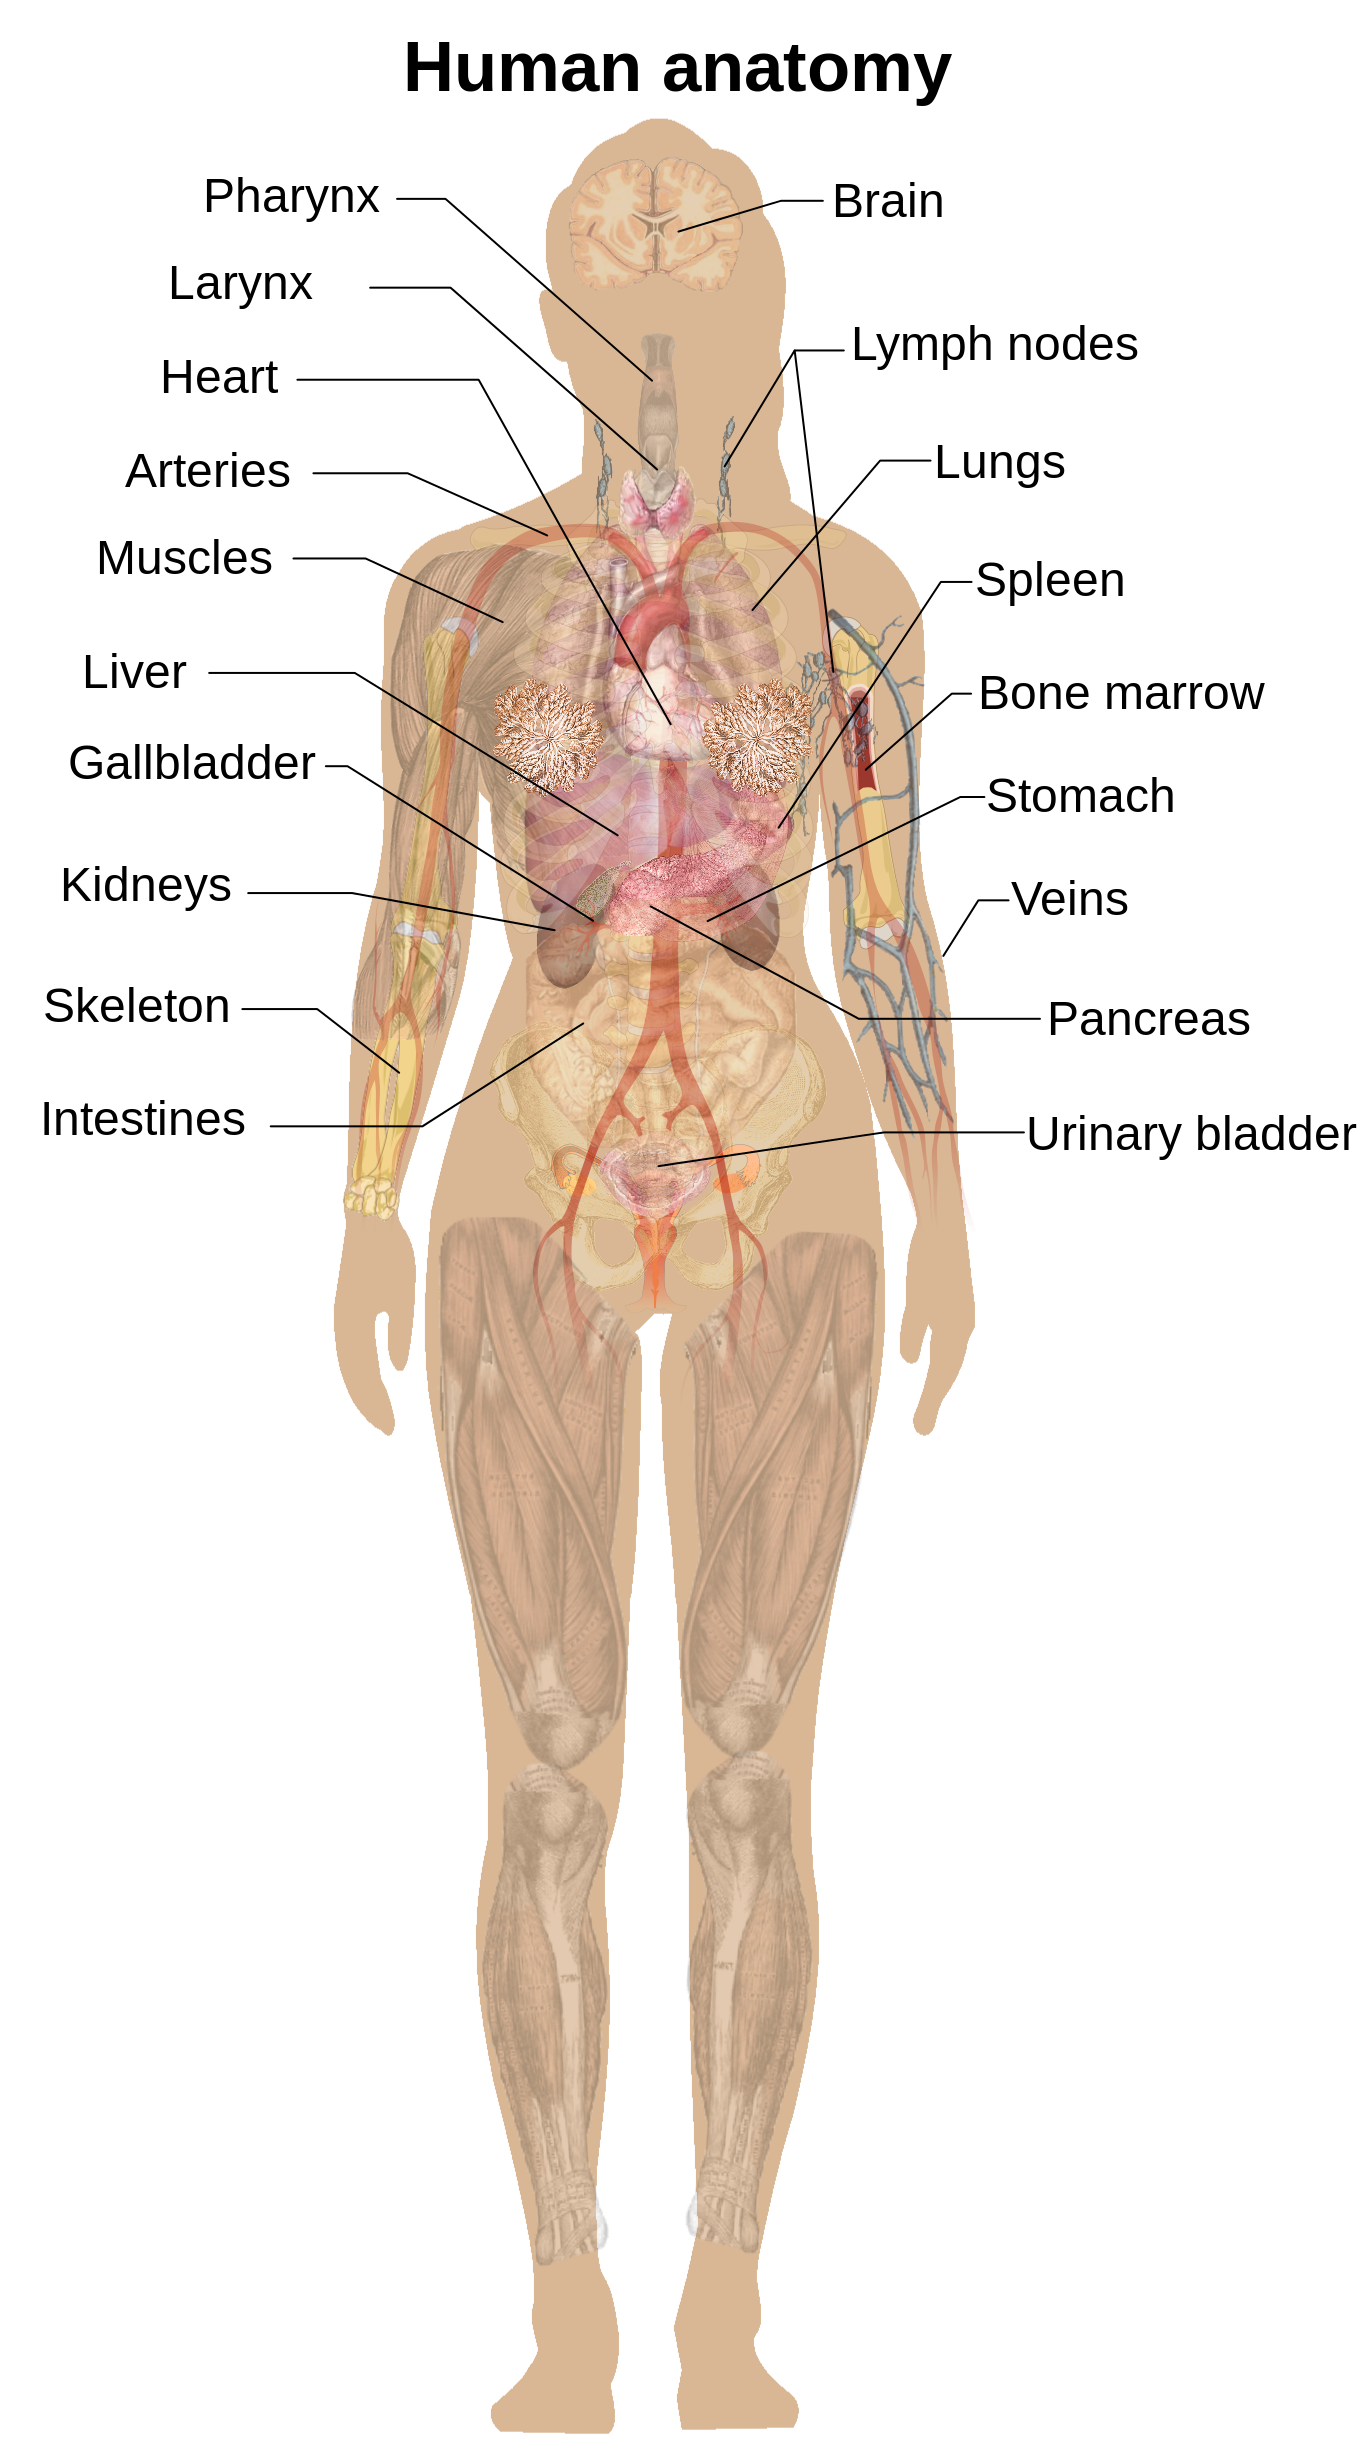 Incre ble anatomy female. Humans clipart anatomical body